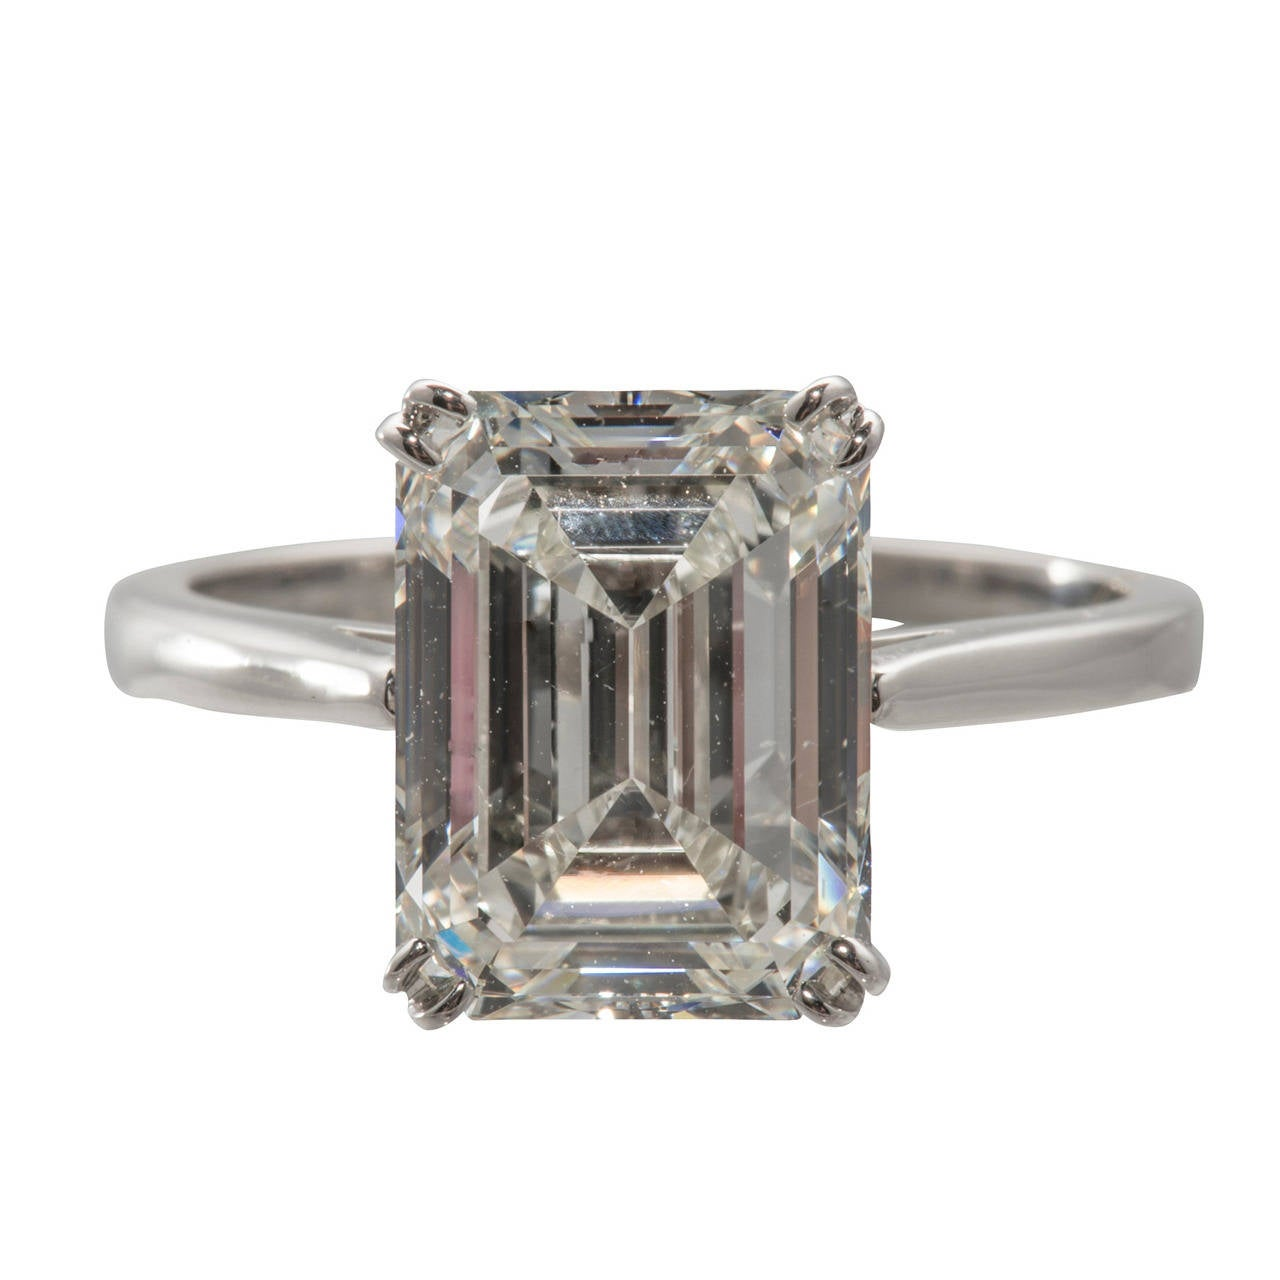 GIA Cert 4 12 Carat Emerald Cut Diamond Engagement Ring For Sale at 1stdibs